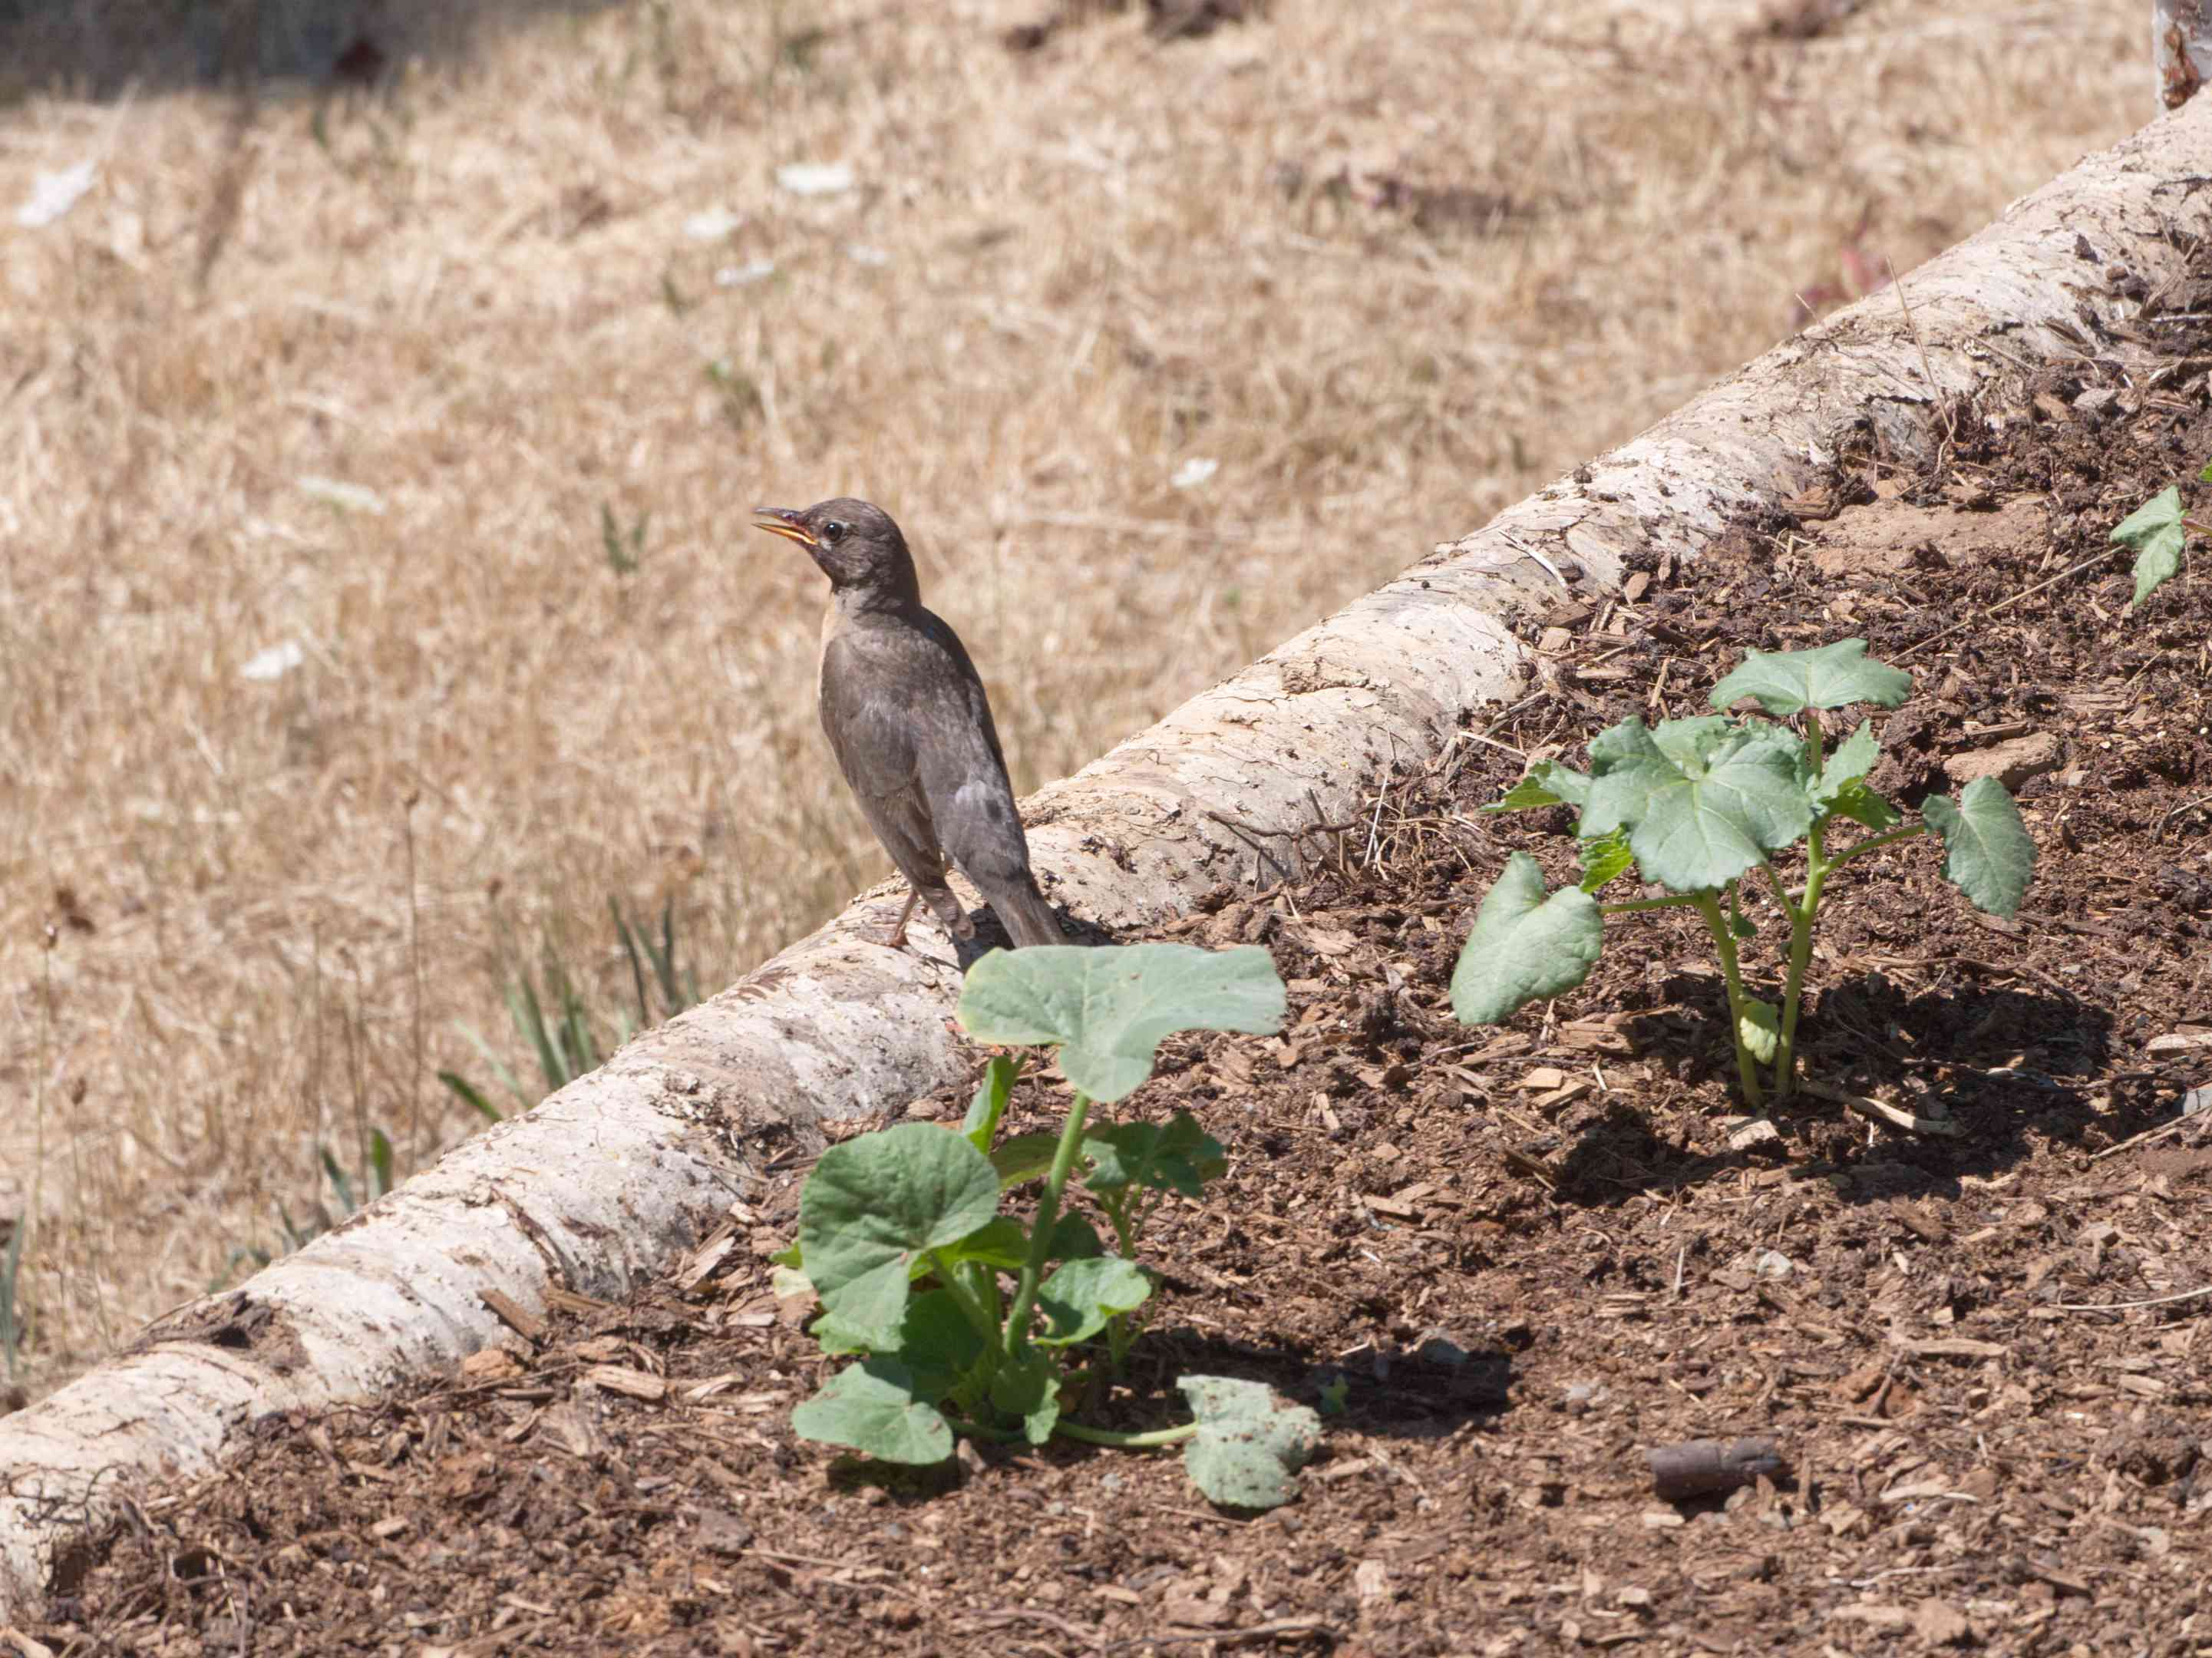 female robin perches on edge of log lining a garden with green plants